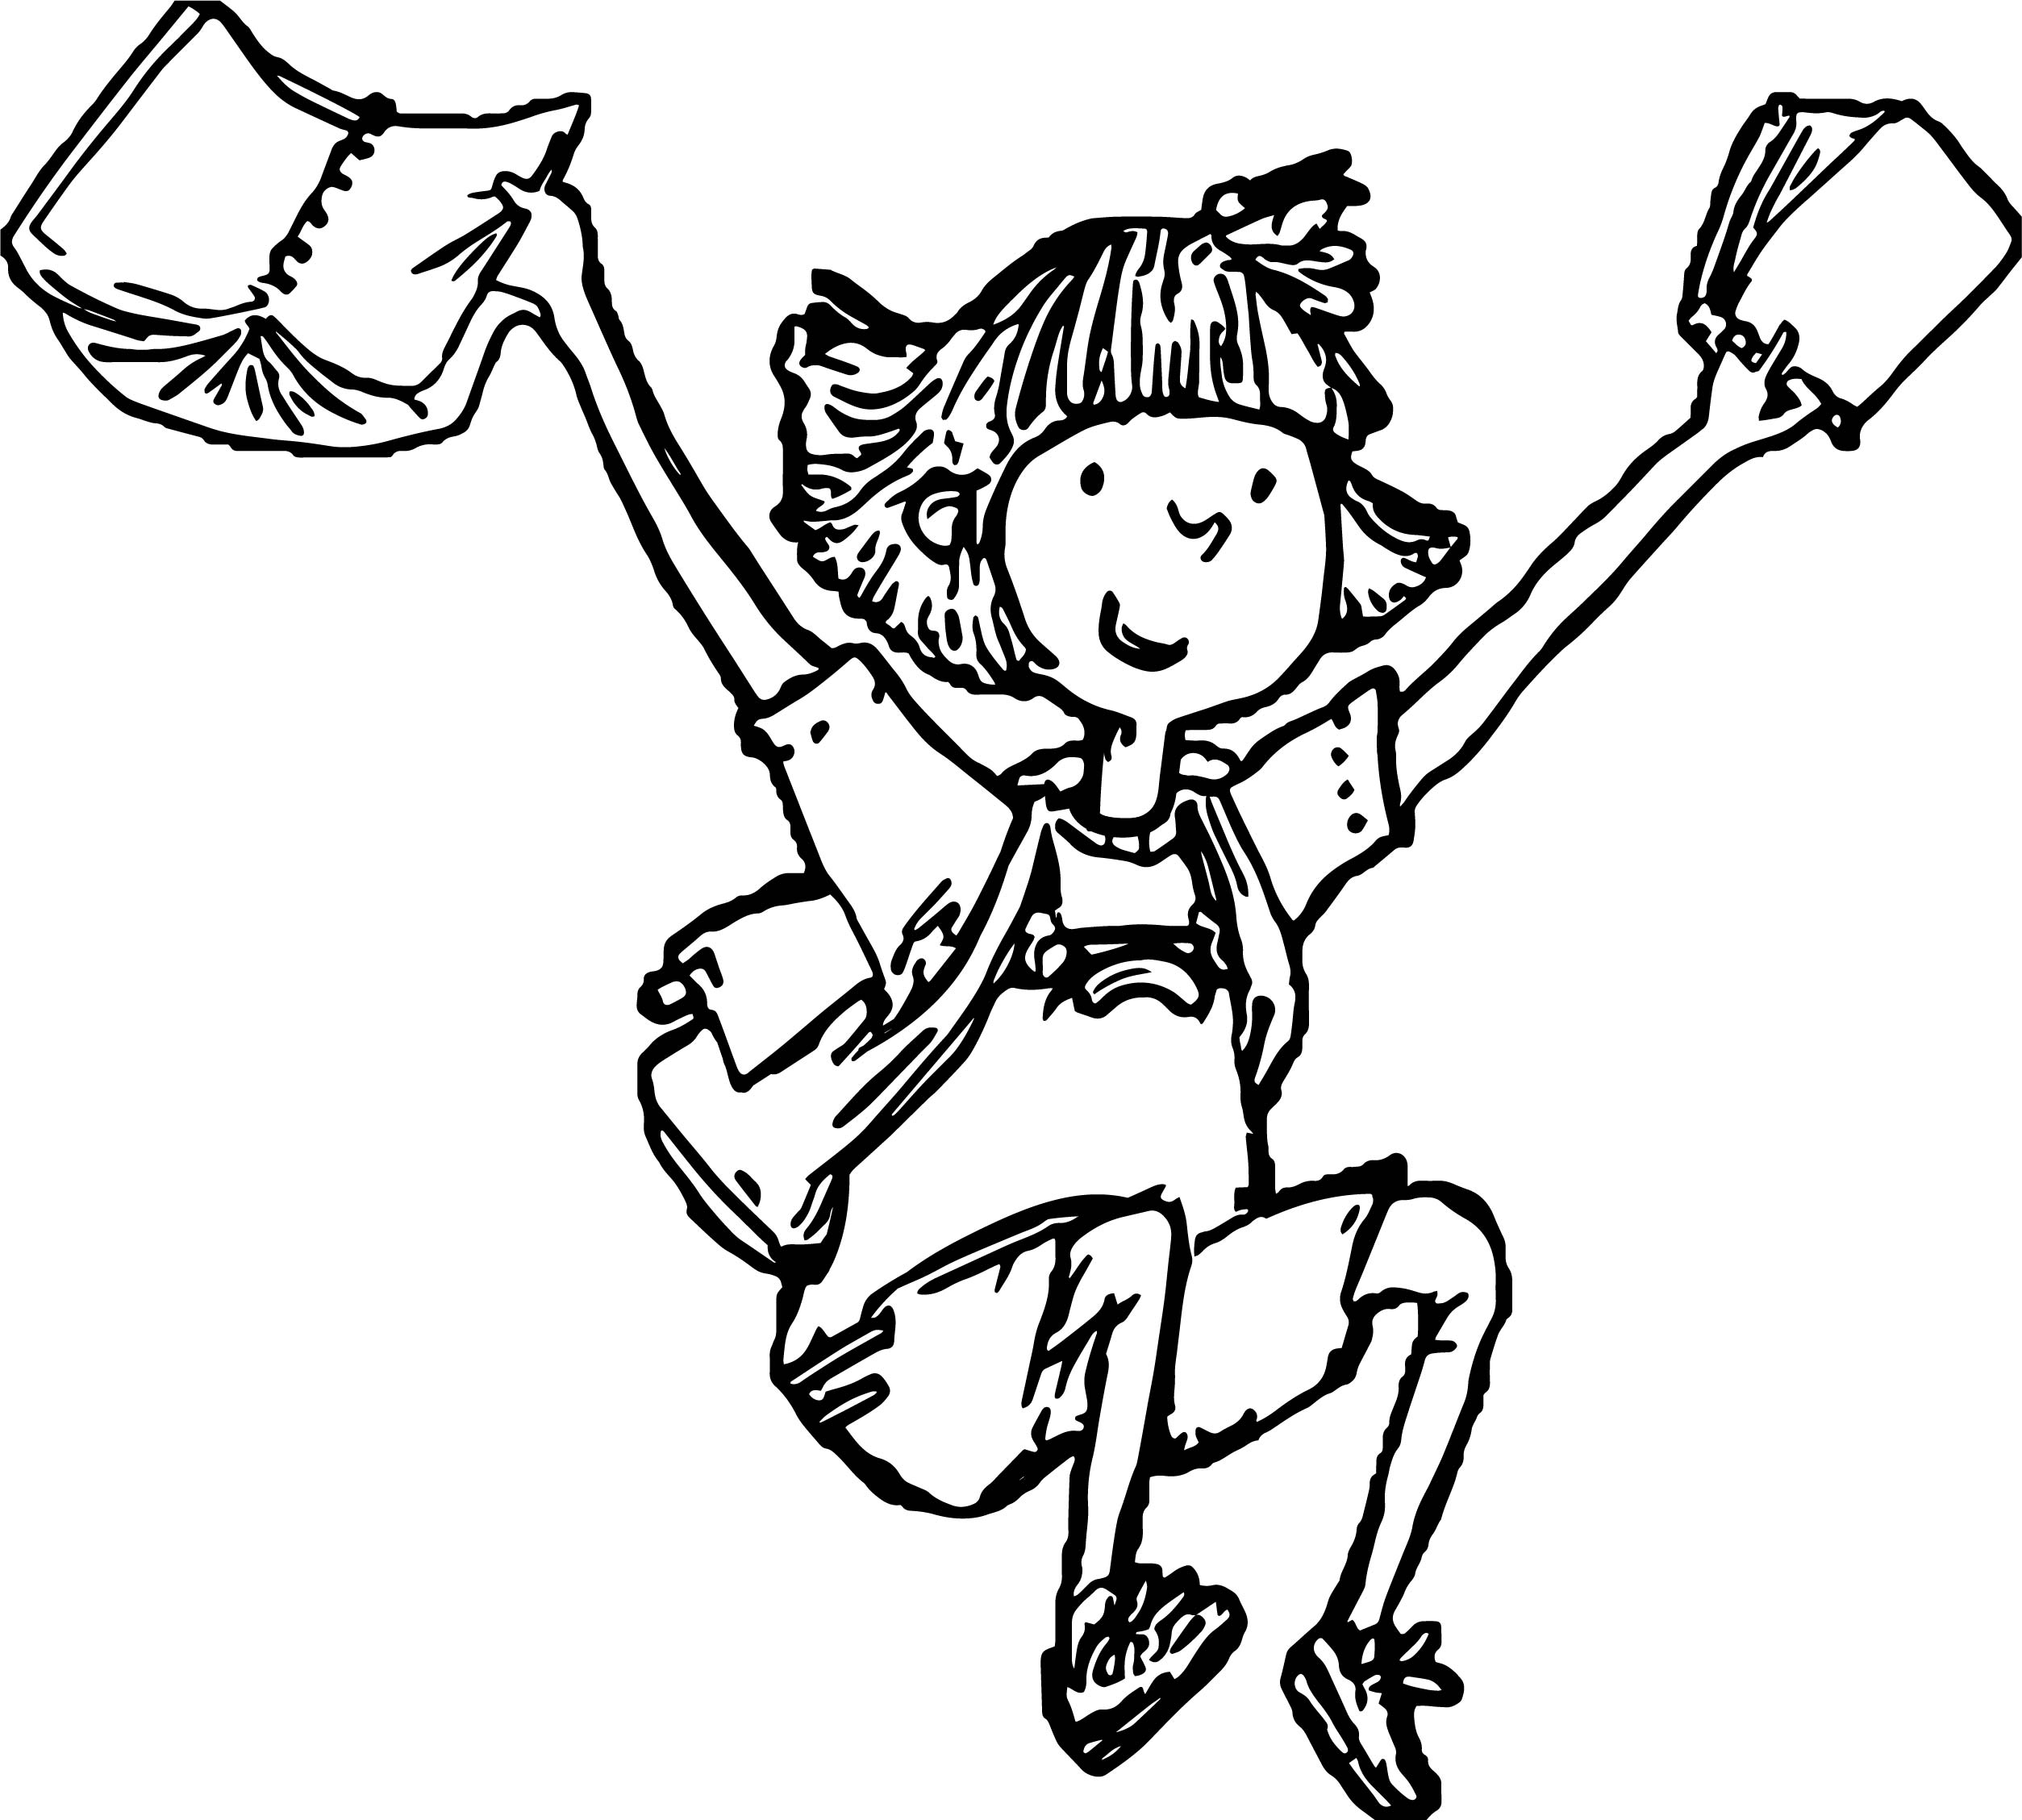 amelia bedelia coloring pages images for adults | Amelia Bedelia Finish School Coloring Page ...